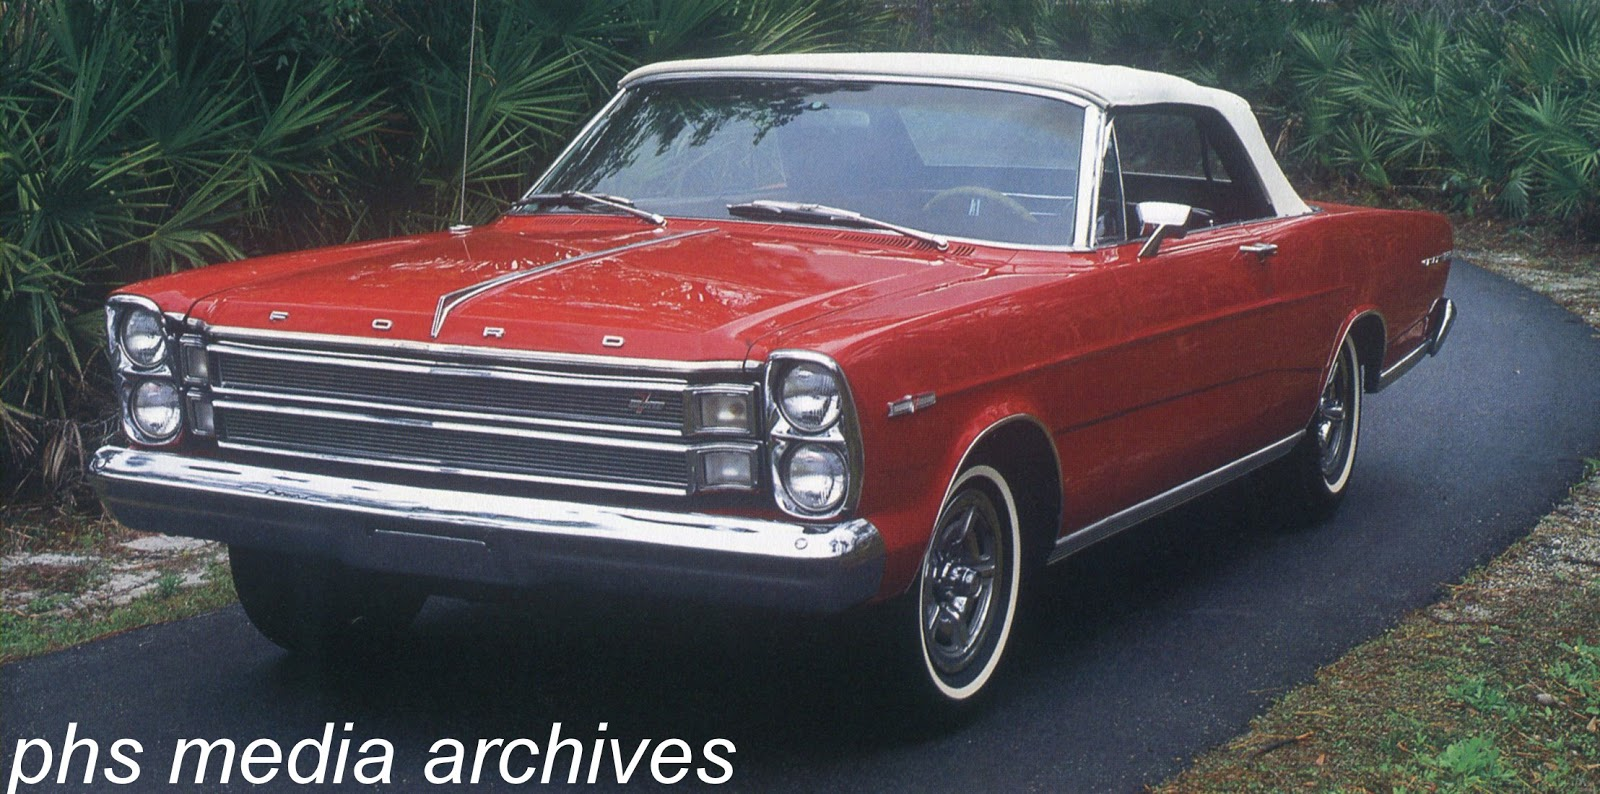 American Muscle 1966 Galaxie 7 Liter Fever Phscollectorcarworld 1960 Studebaker Lark Wiring Diagram They Were Stunning Full Size Cars At The Apogee Of Genre